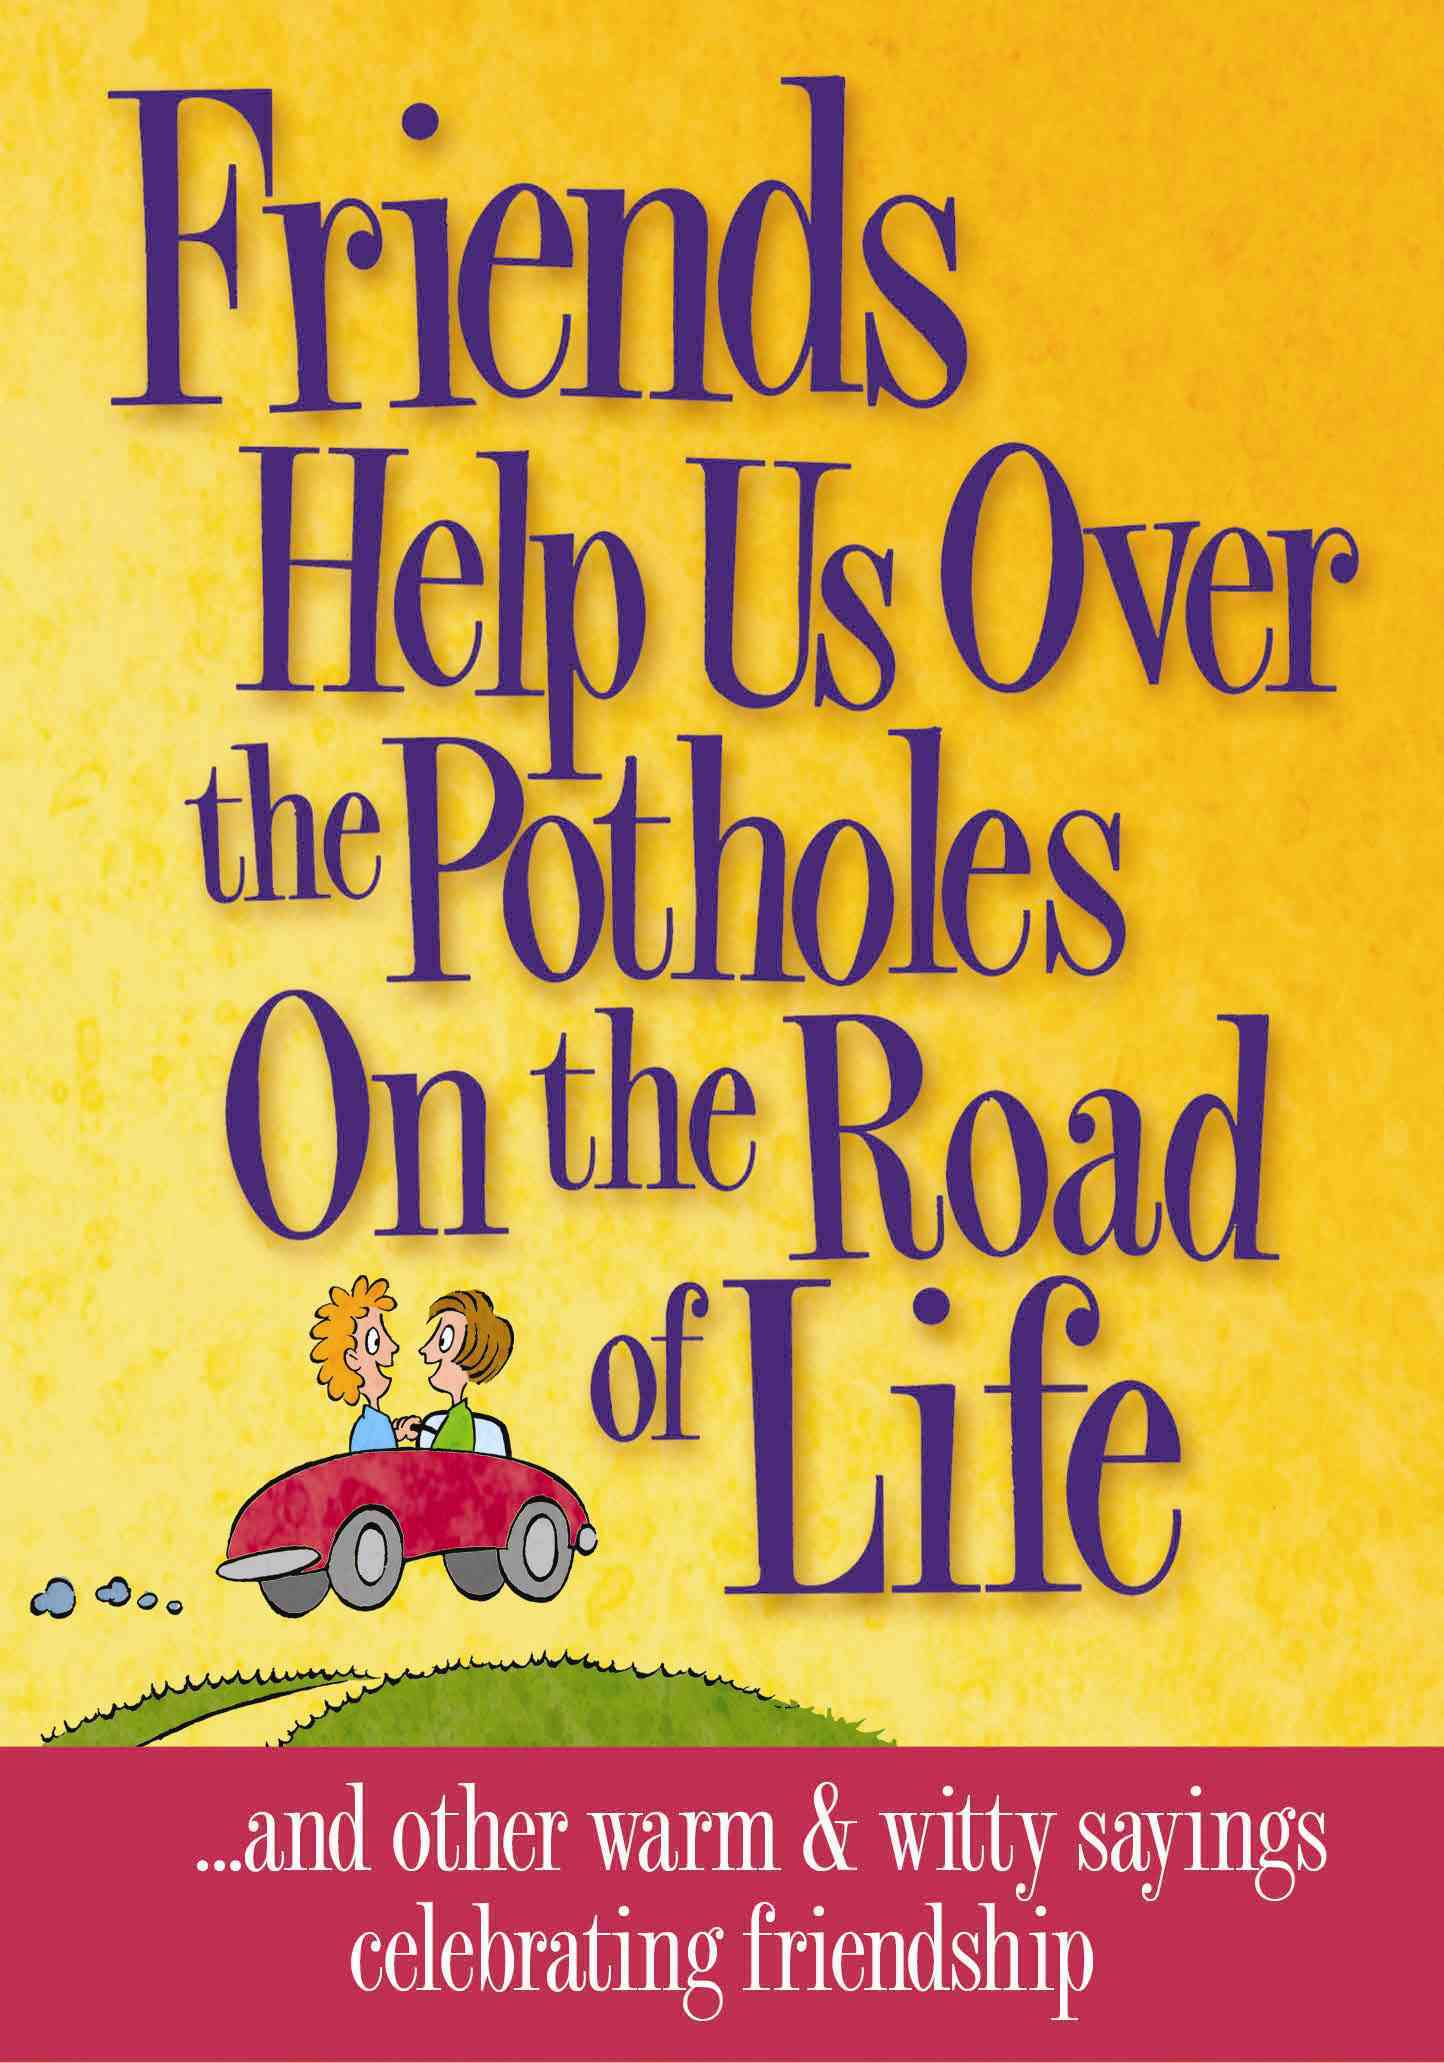 Friends Help Us over the Potholes on the Road of Life By Product Concept Mfg., Inc. (COR)